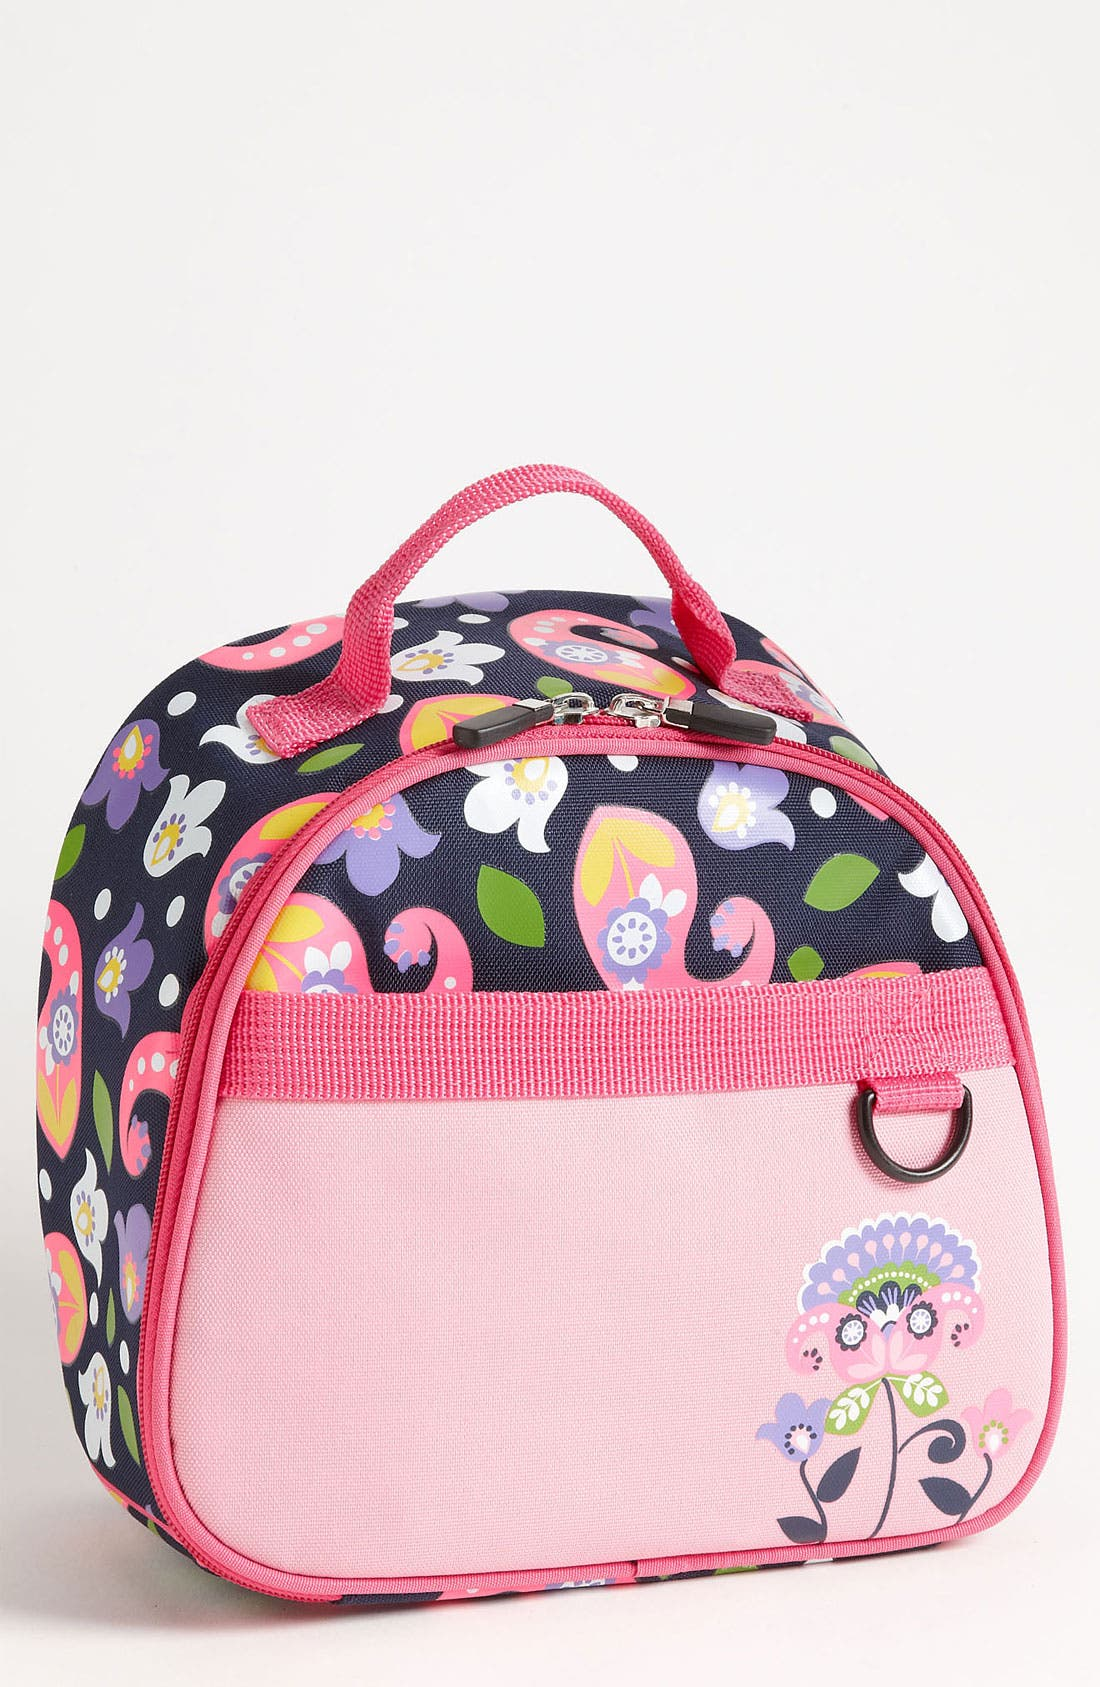 Alternate Image 1 Selected - Hanna Andersson Lunch Bag (Girls)